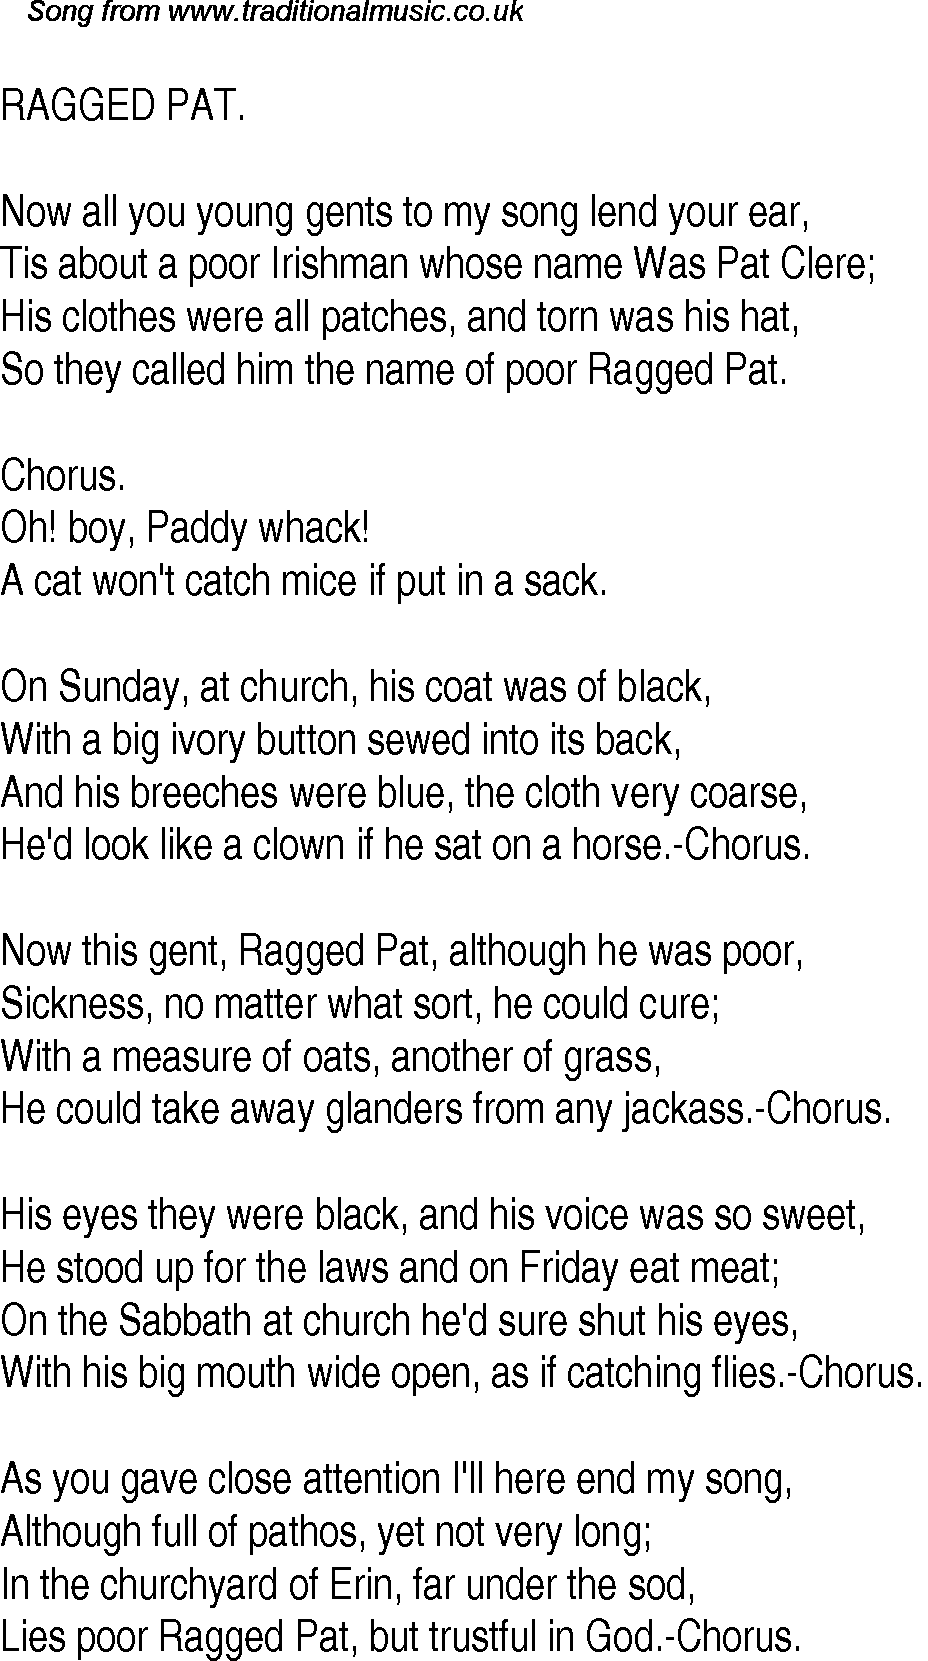 cat in the hat song lyrics